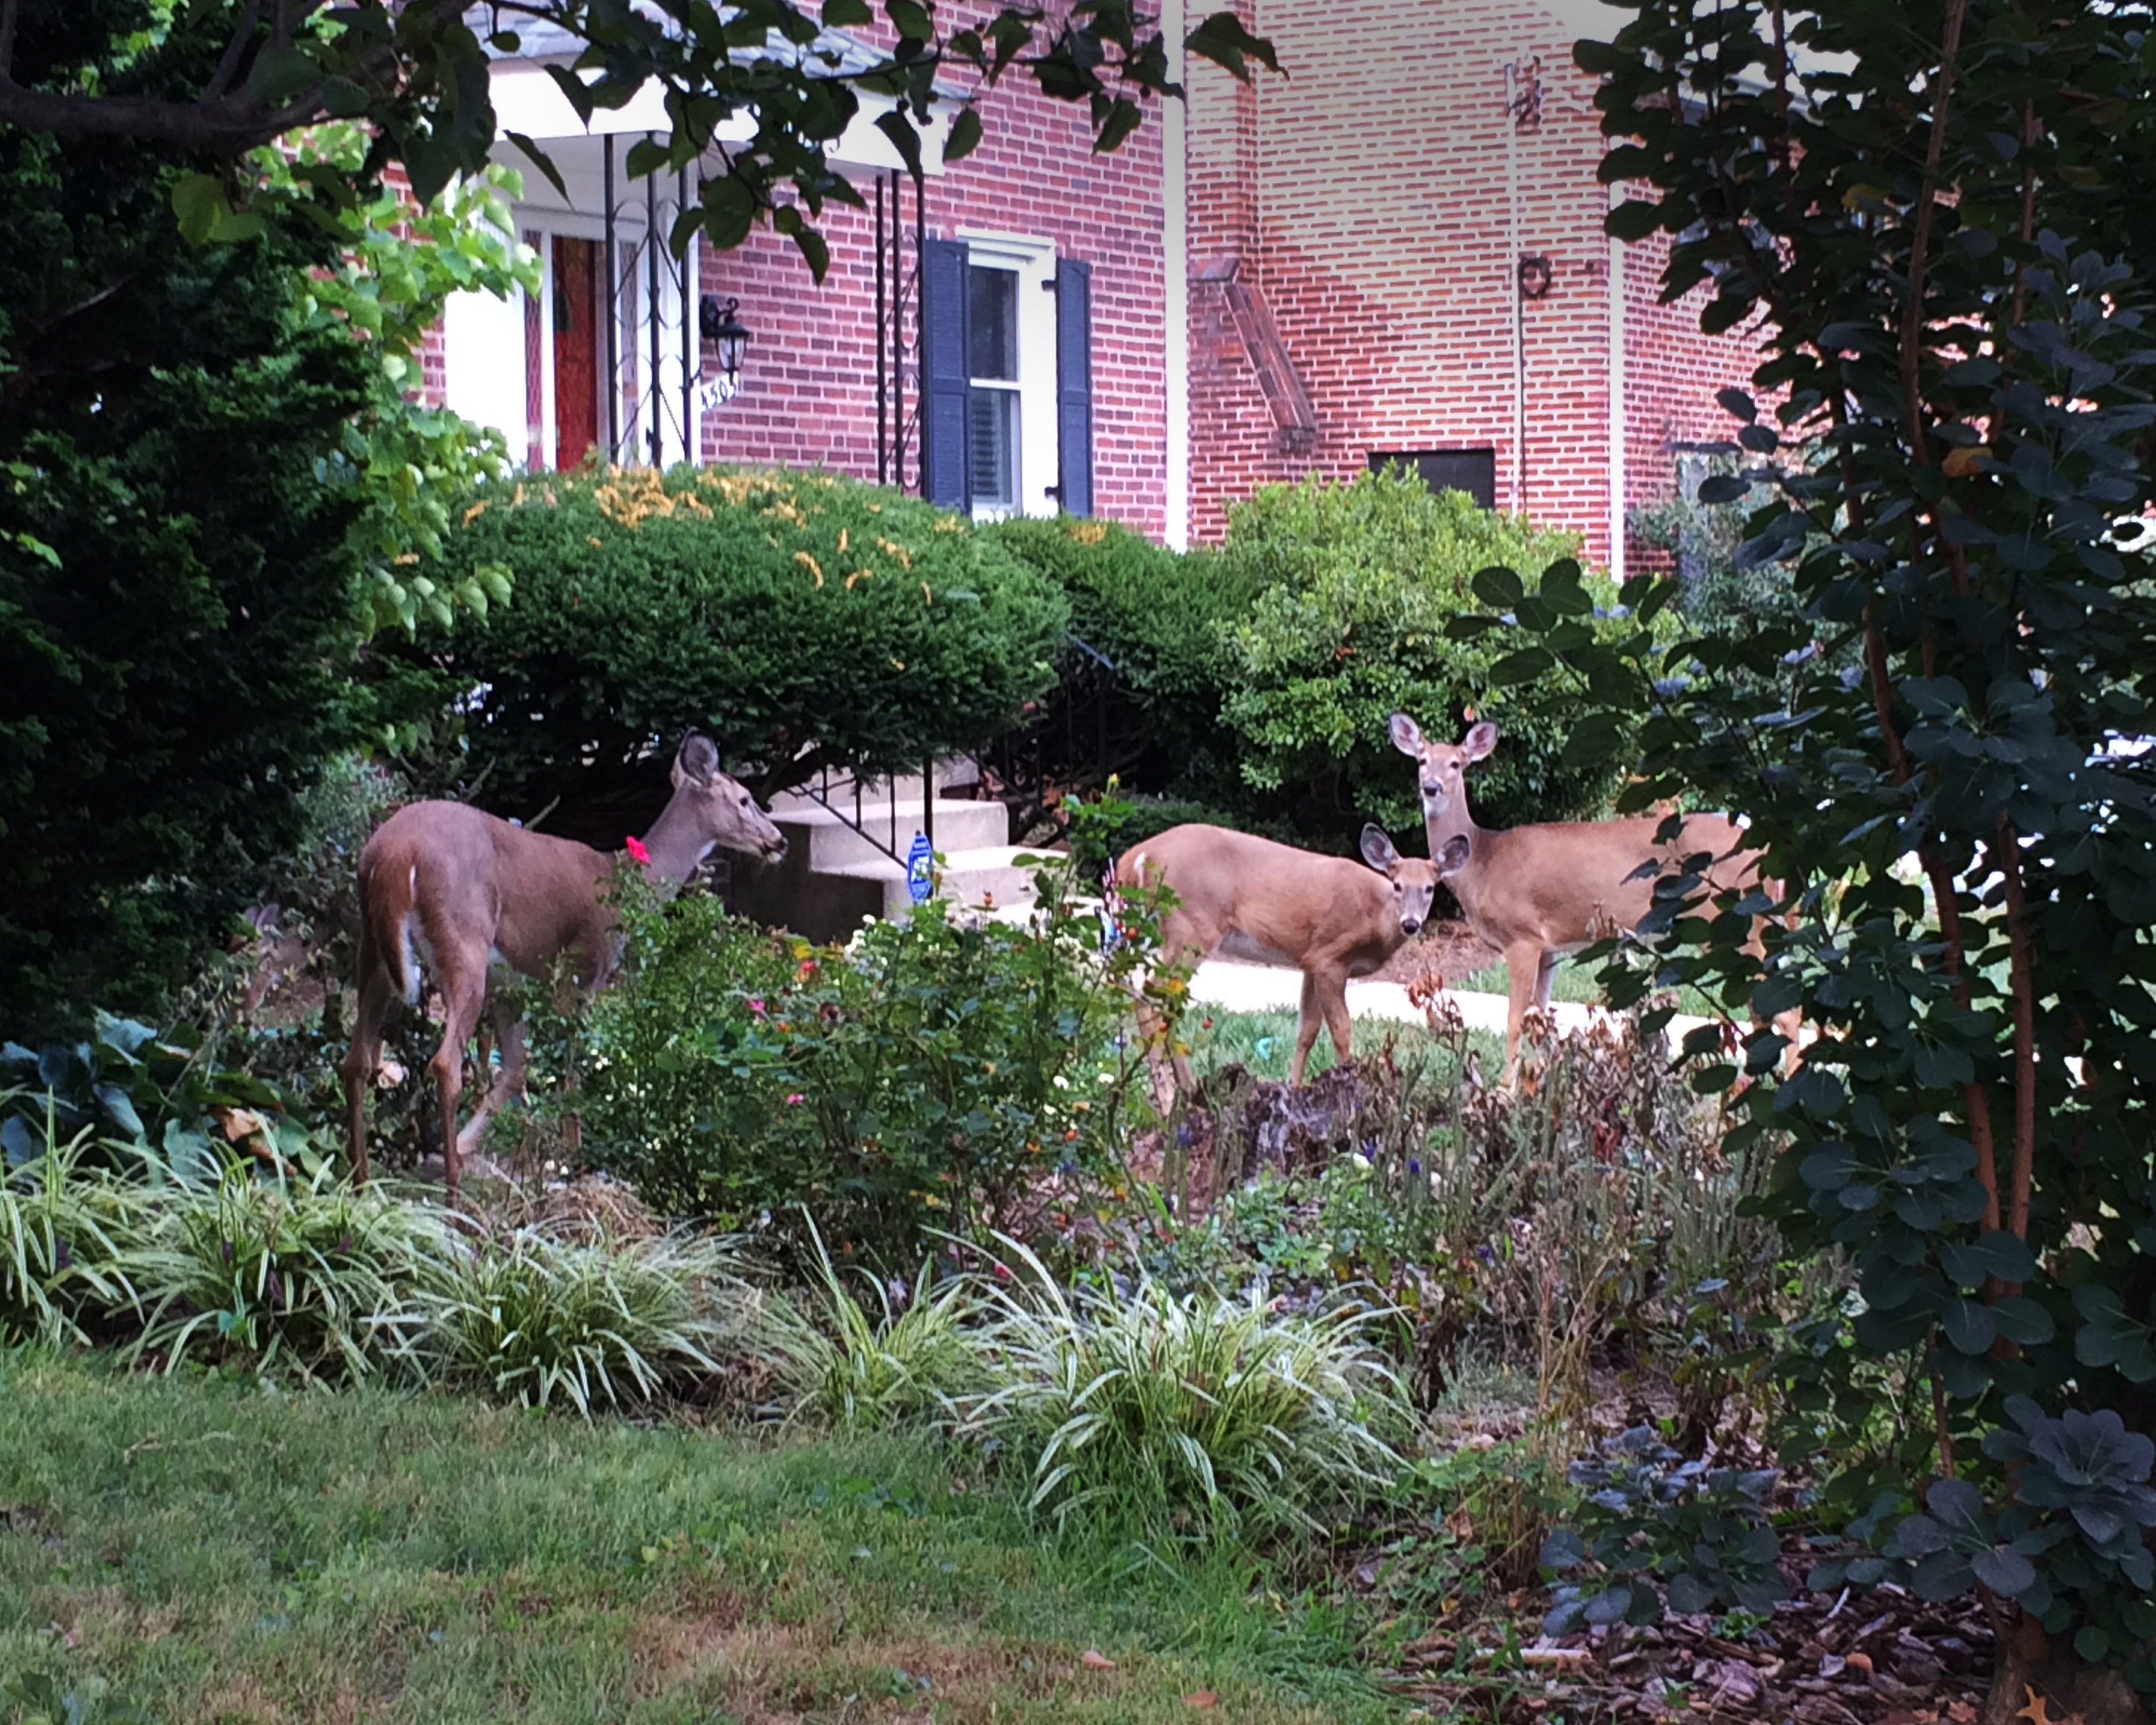 Urban deer become very comfortable in their environment.